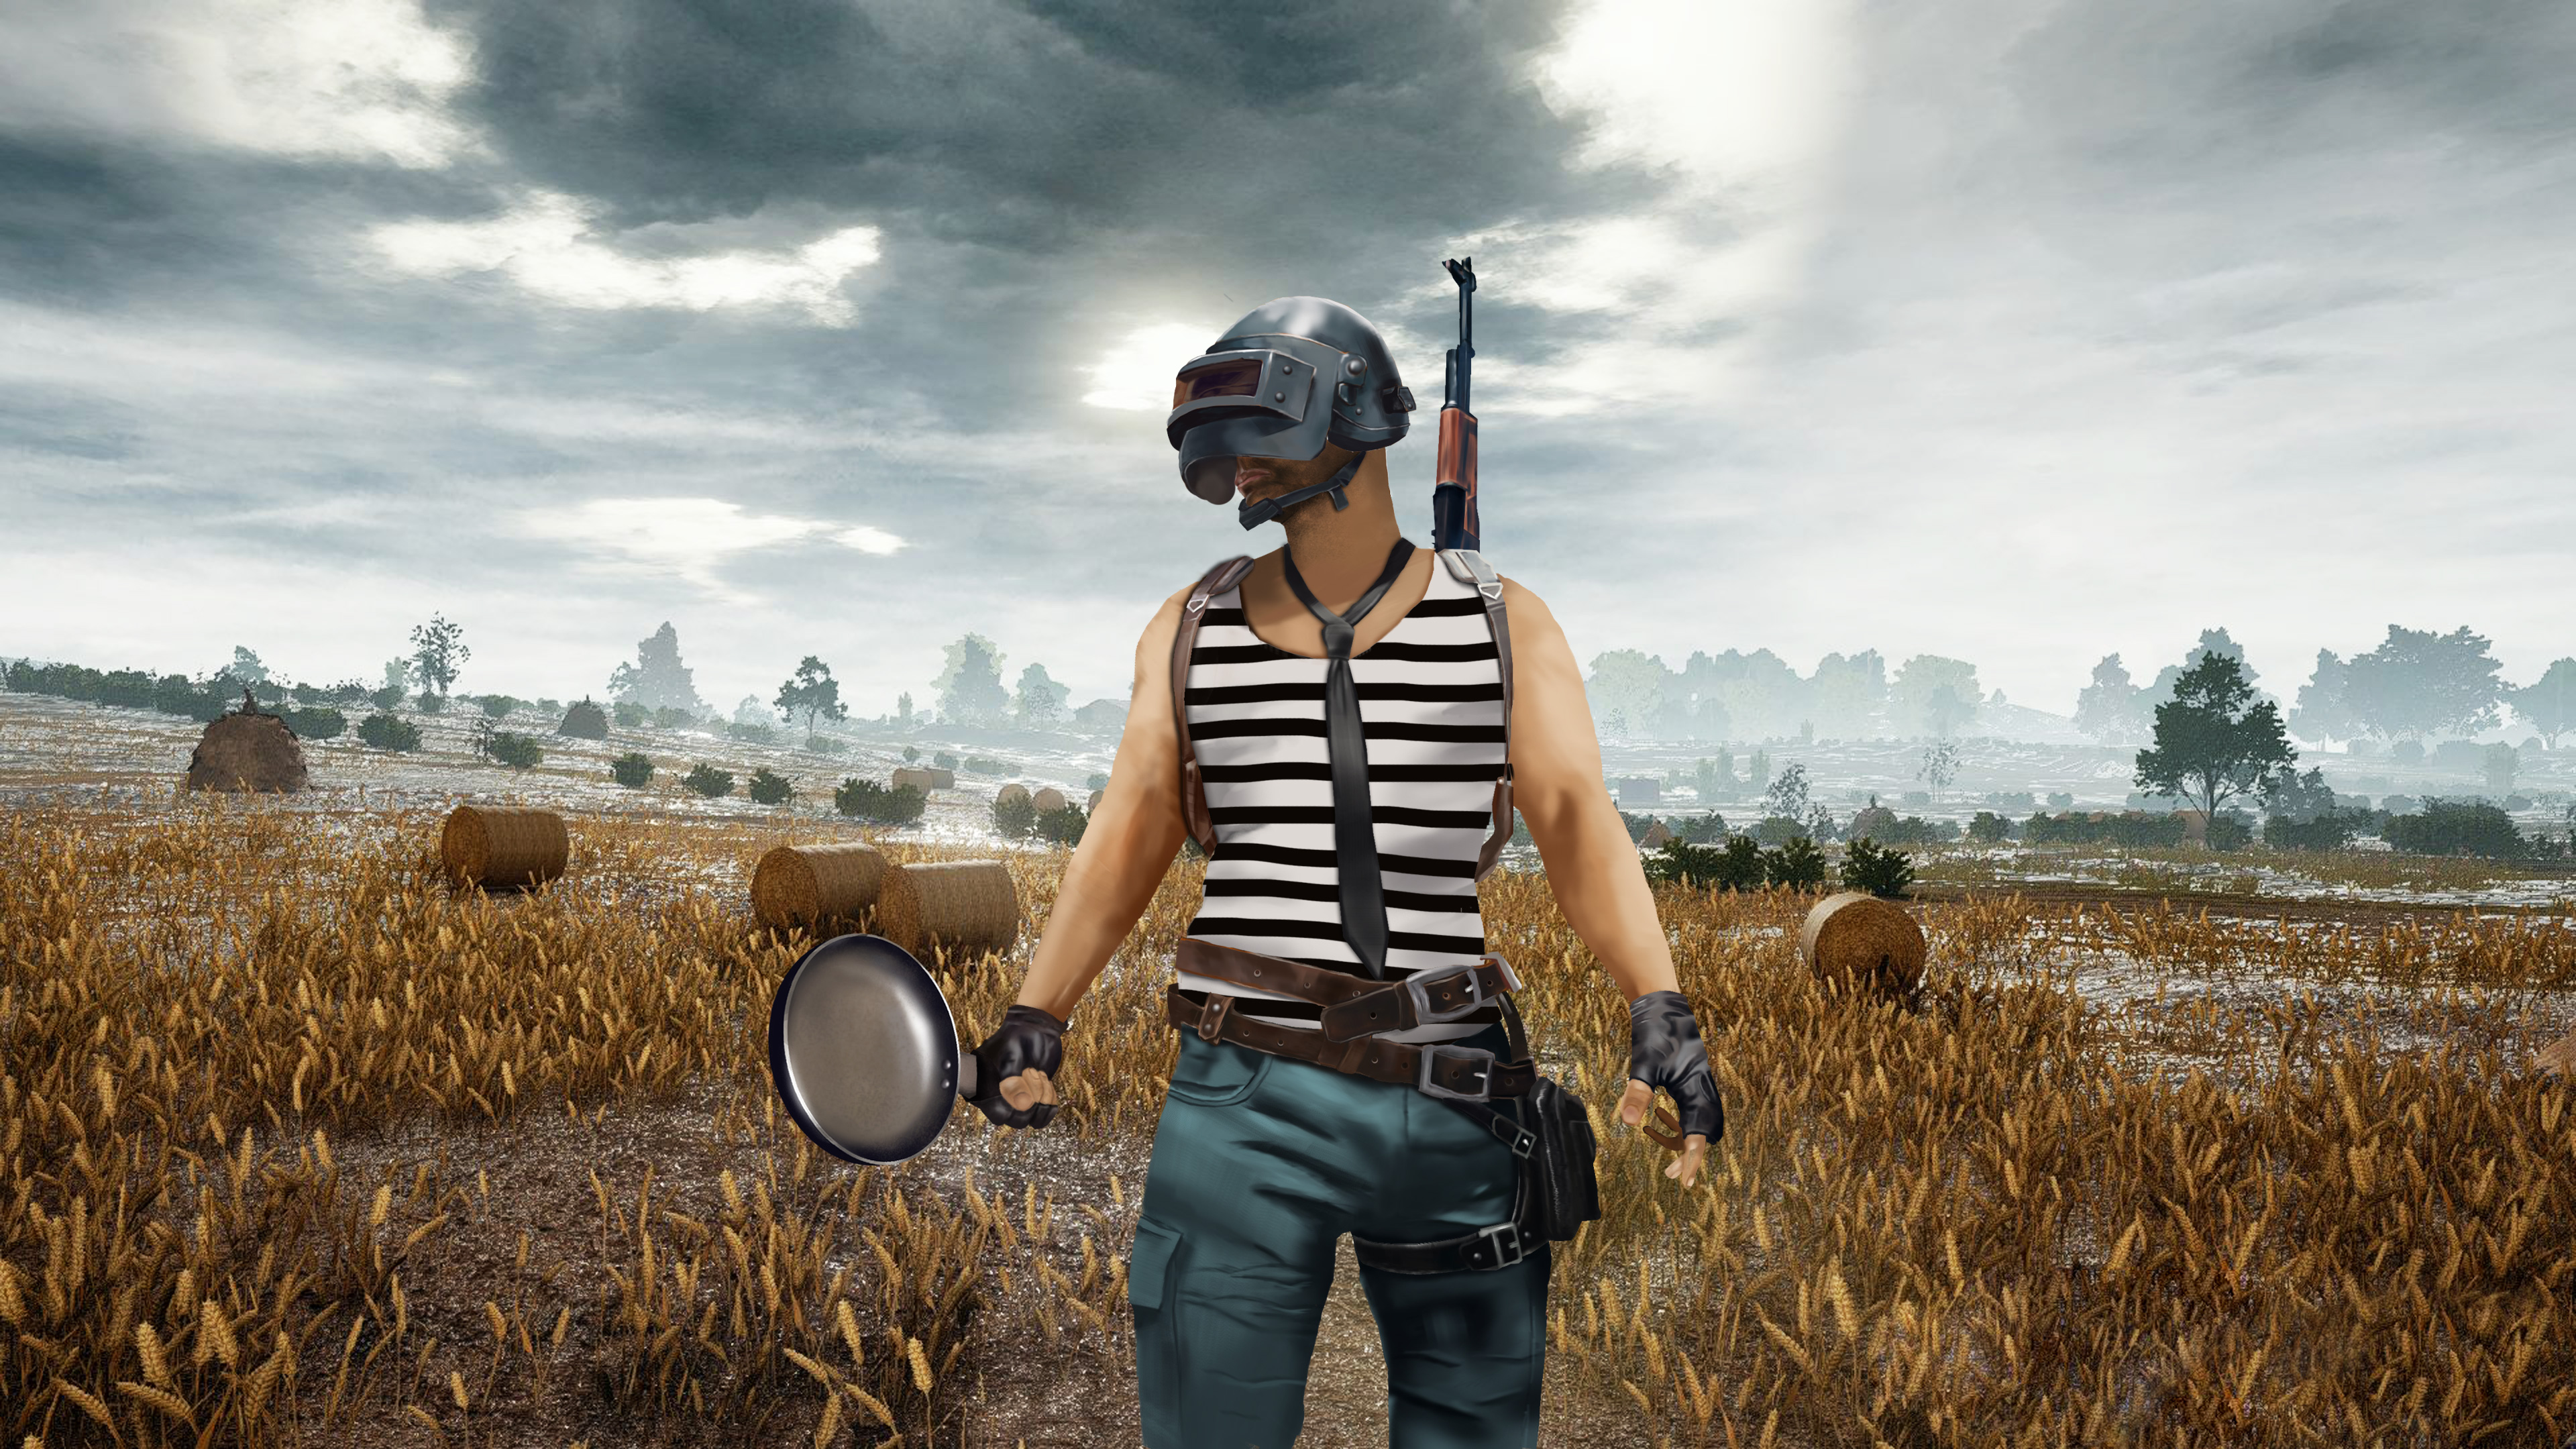 Pubg Helmet Wallpaper 4k: PUBG Helmet And Pan Player, HD Games, 4k Wallpapers